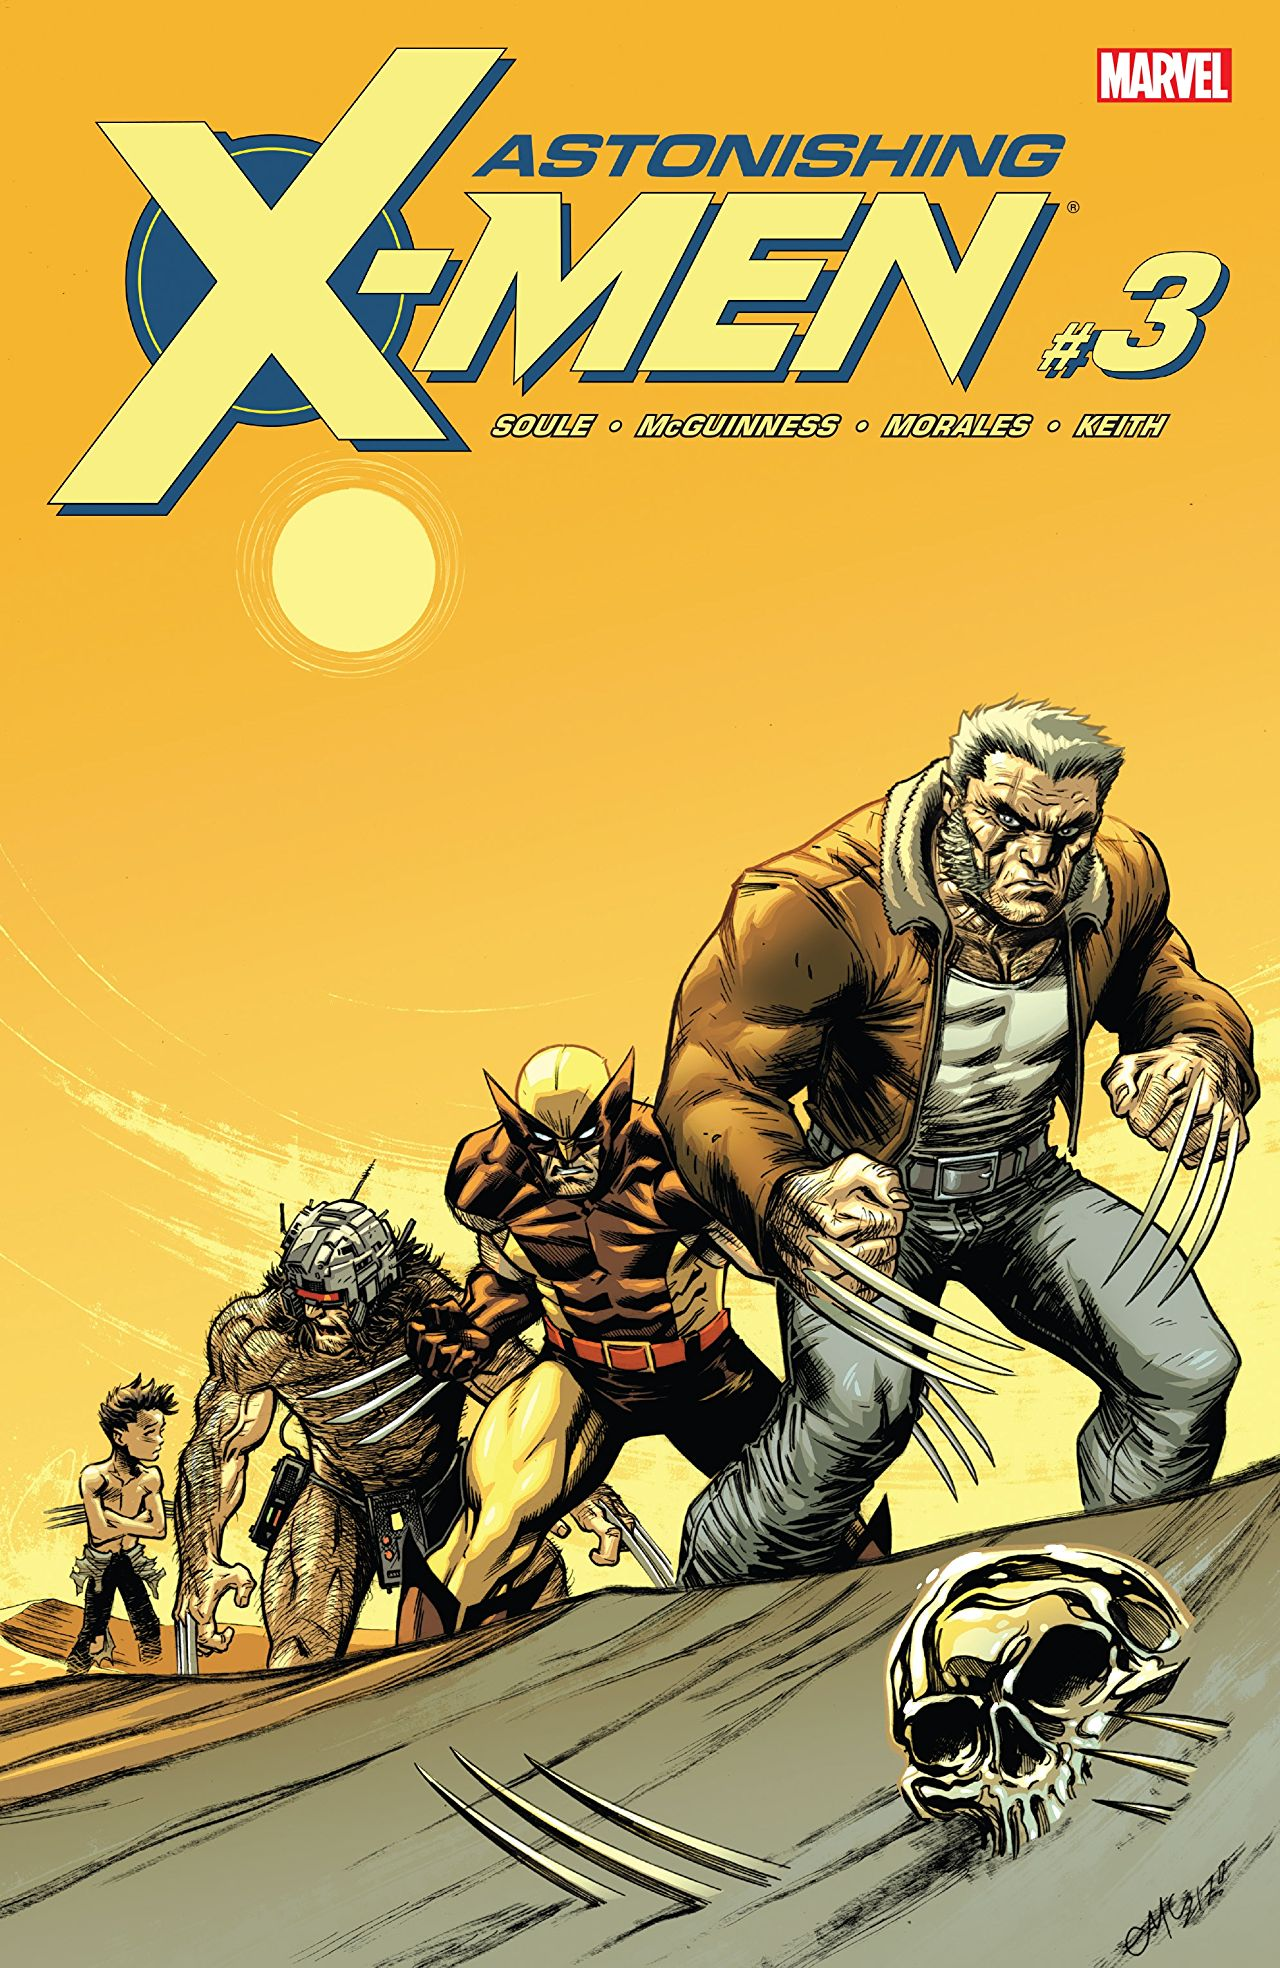 Astonishing X-Men #3 Review